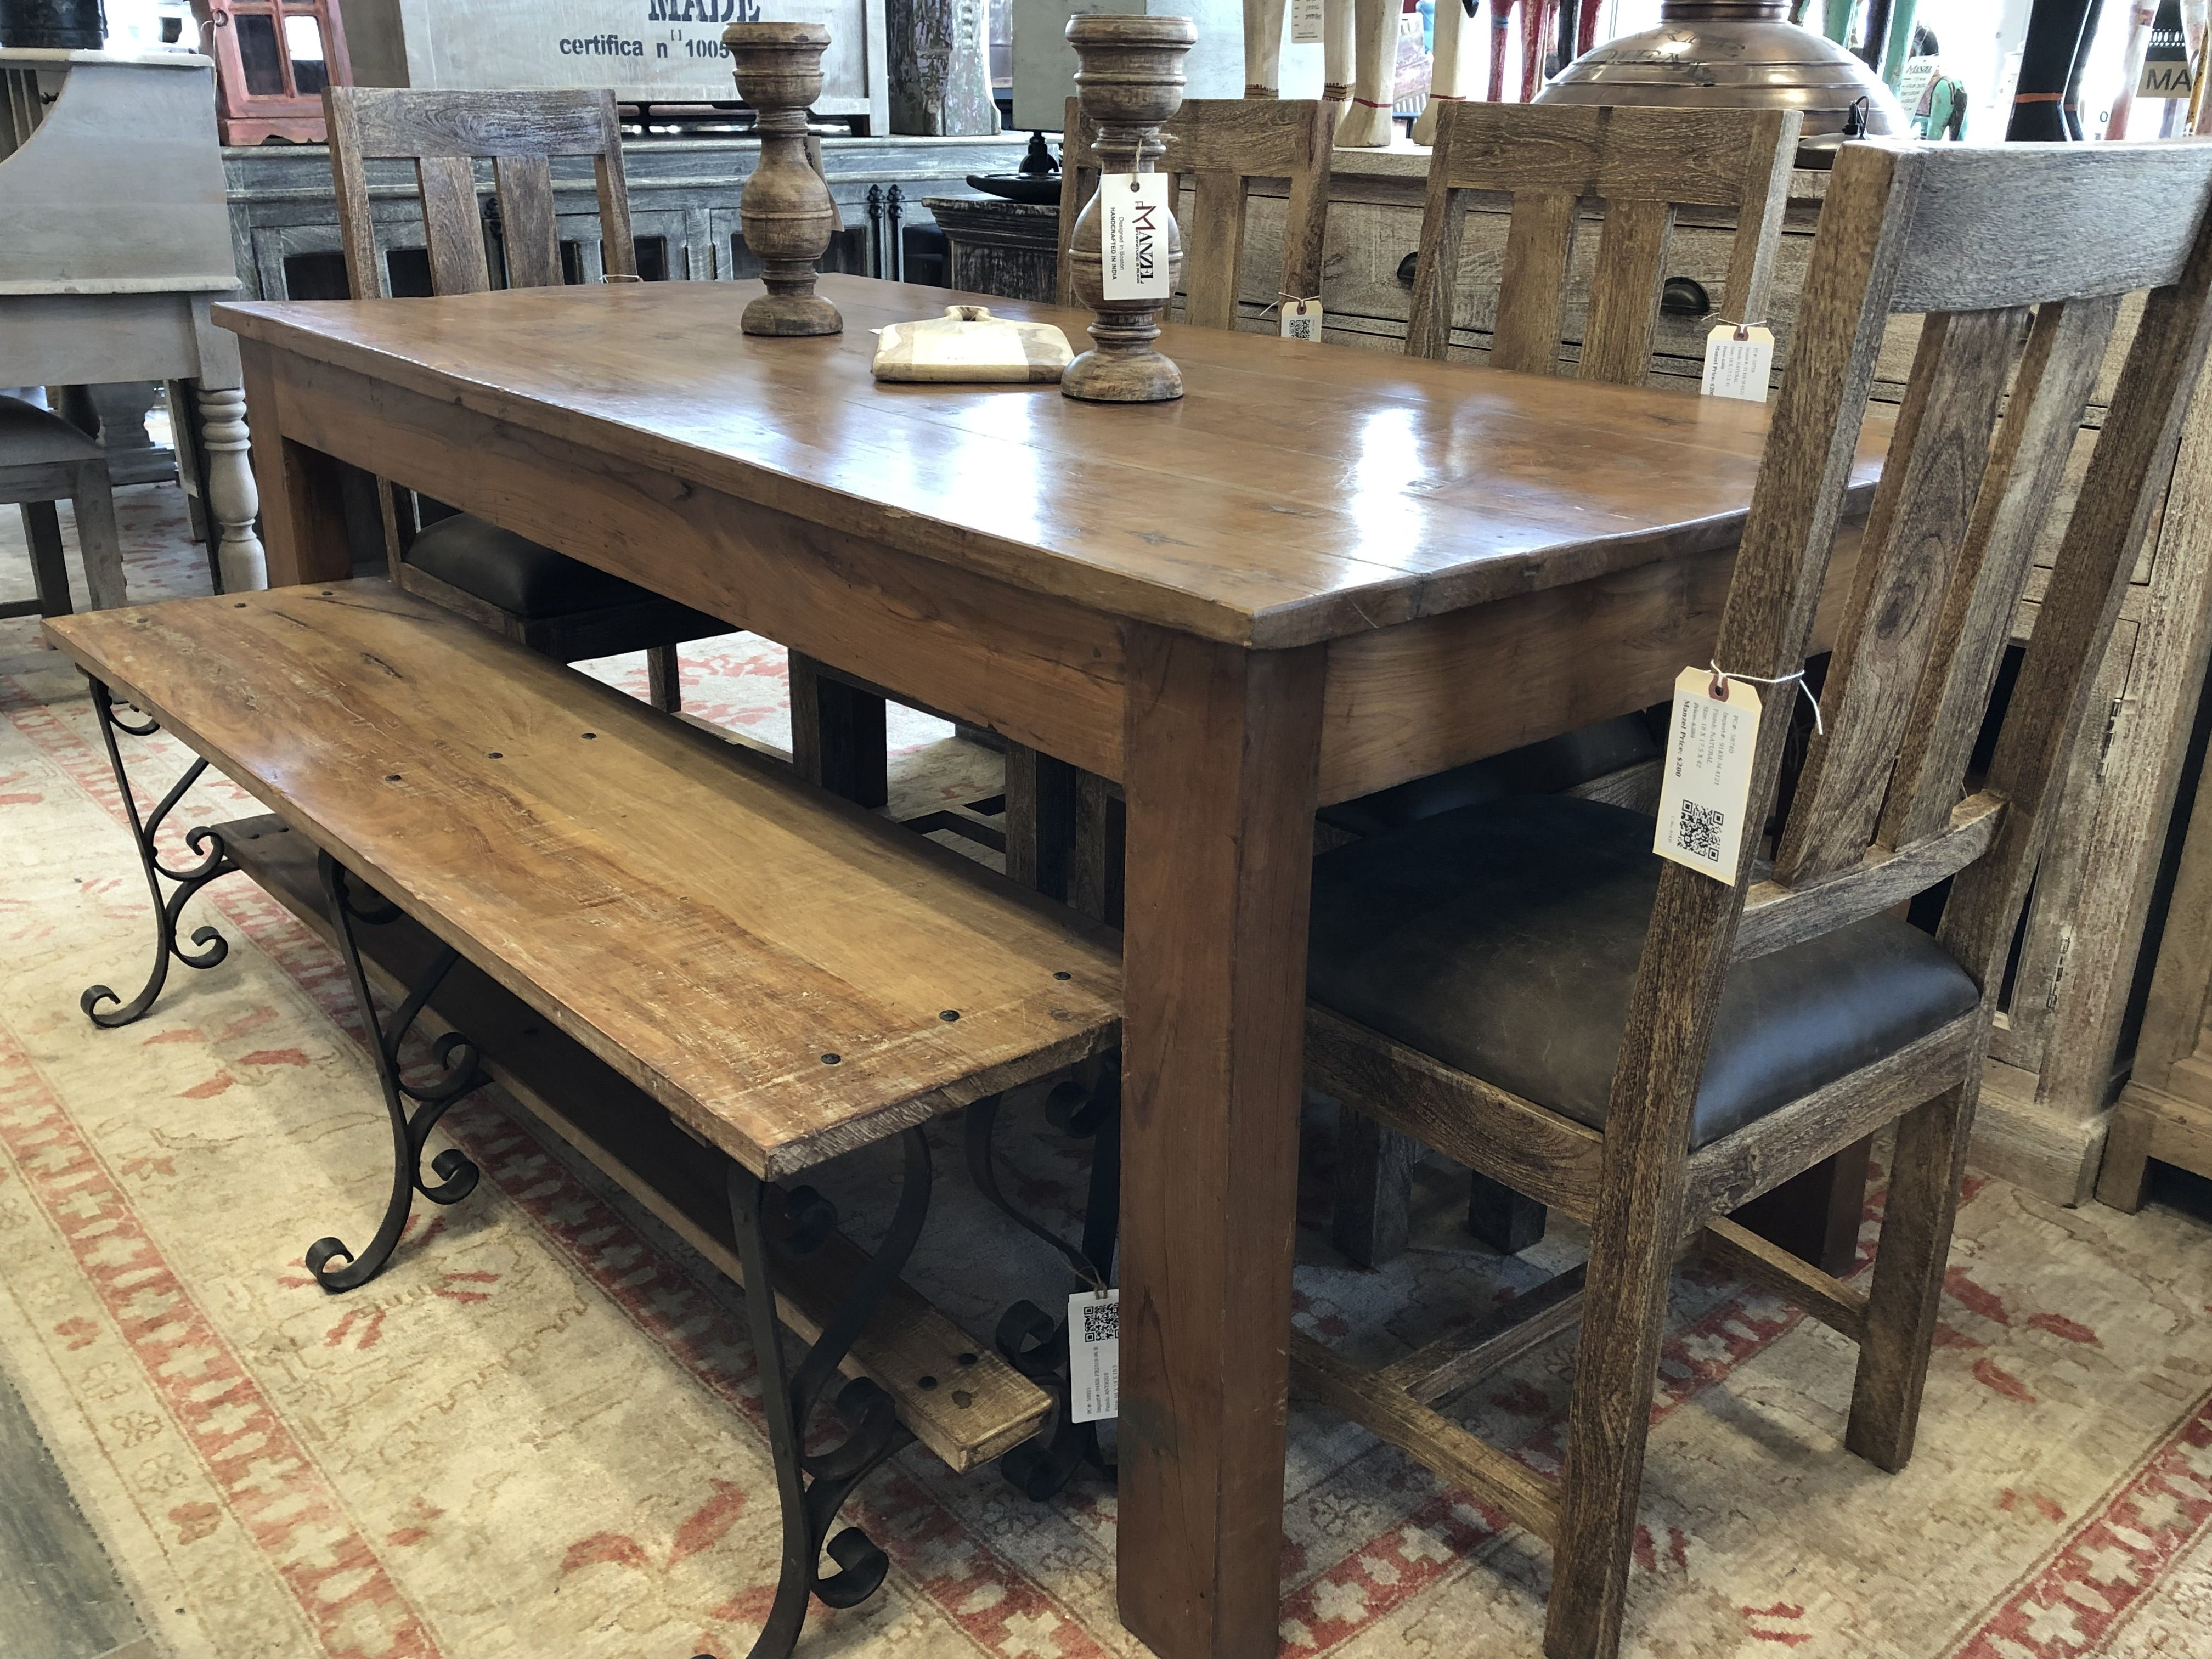 Clean Parson Design Table From Reclaimed Wood Bench Is A Little More Decorative Rustic Wood Furniture Dining